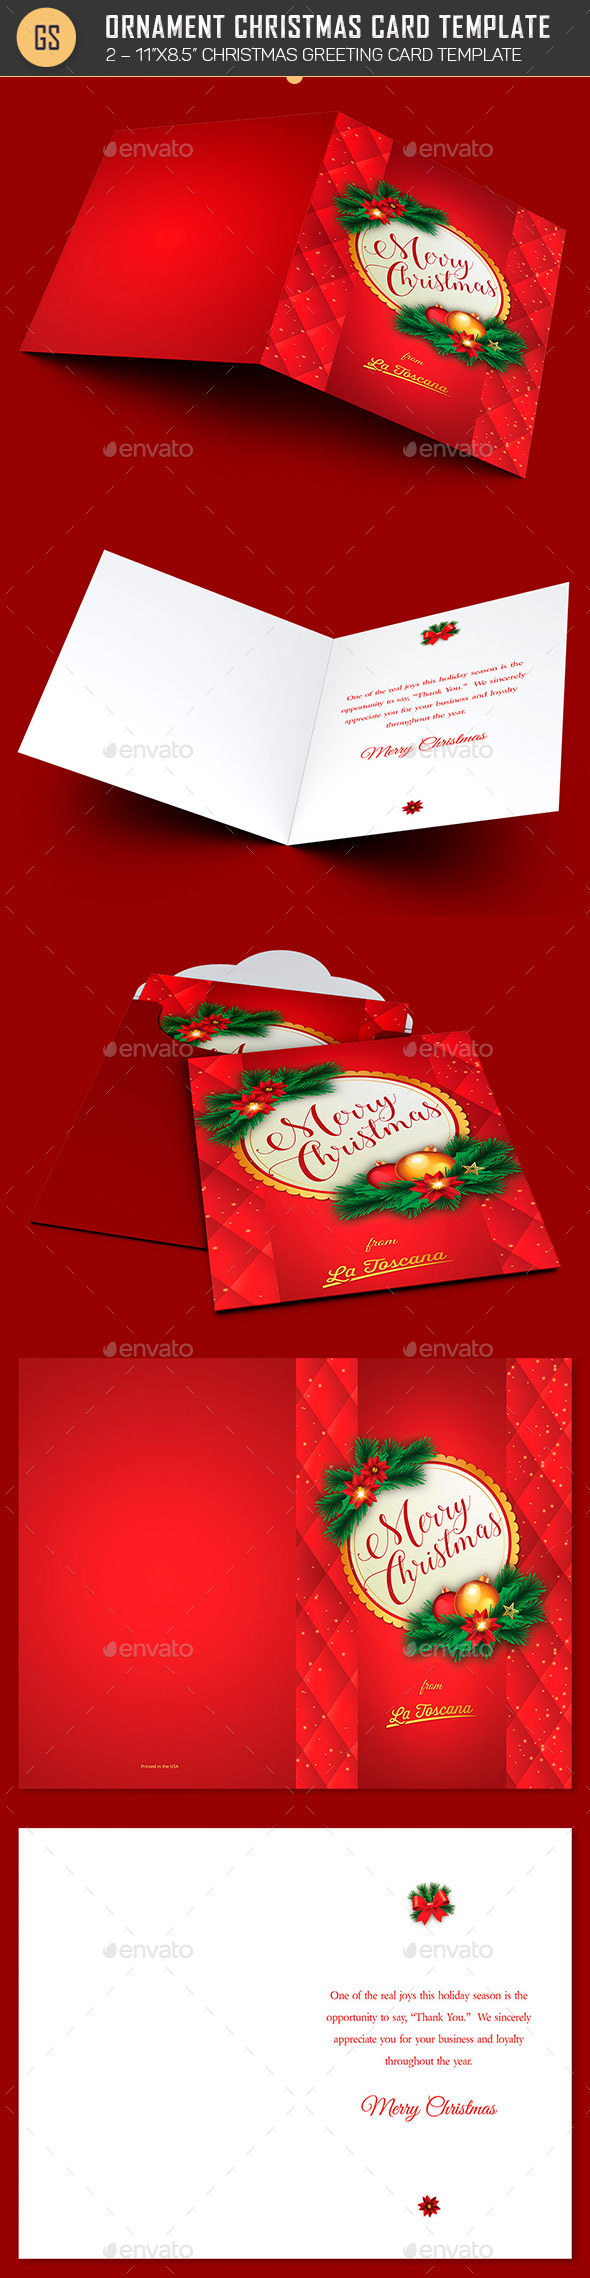 Red Ornament Christmas Card Template - Holiday Greeting Cards